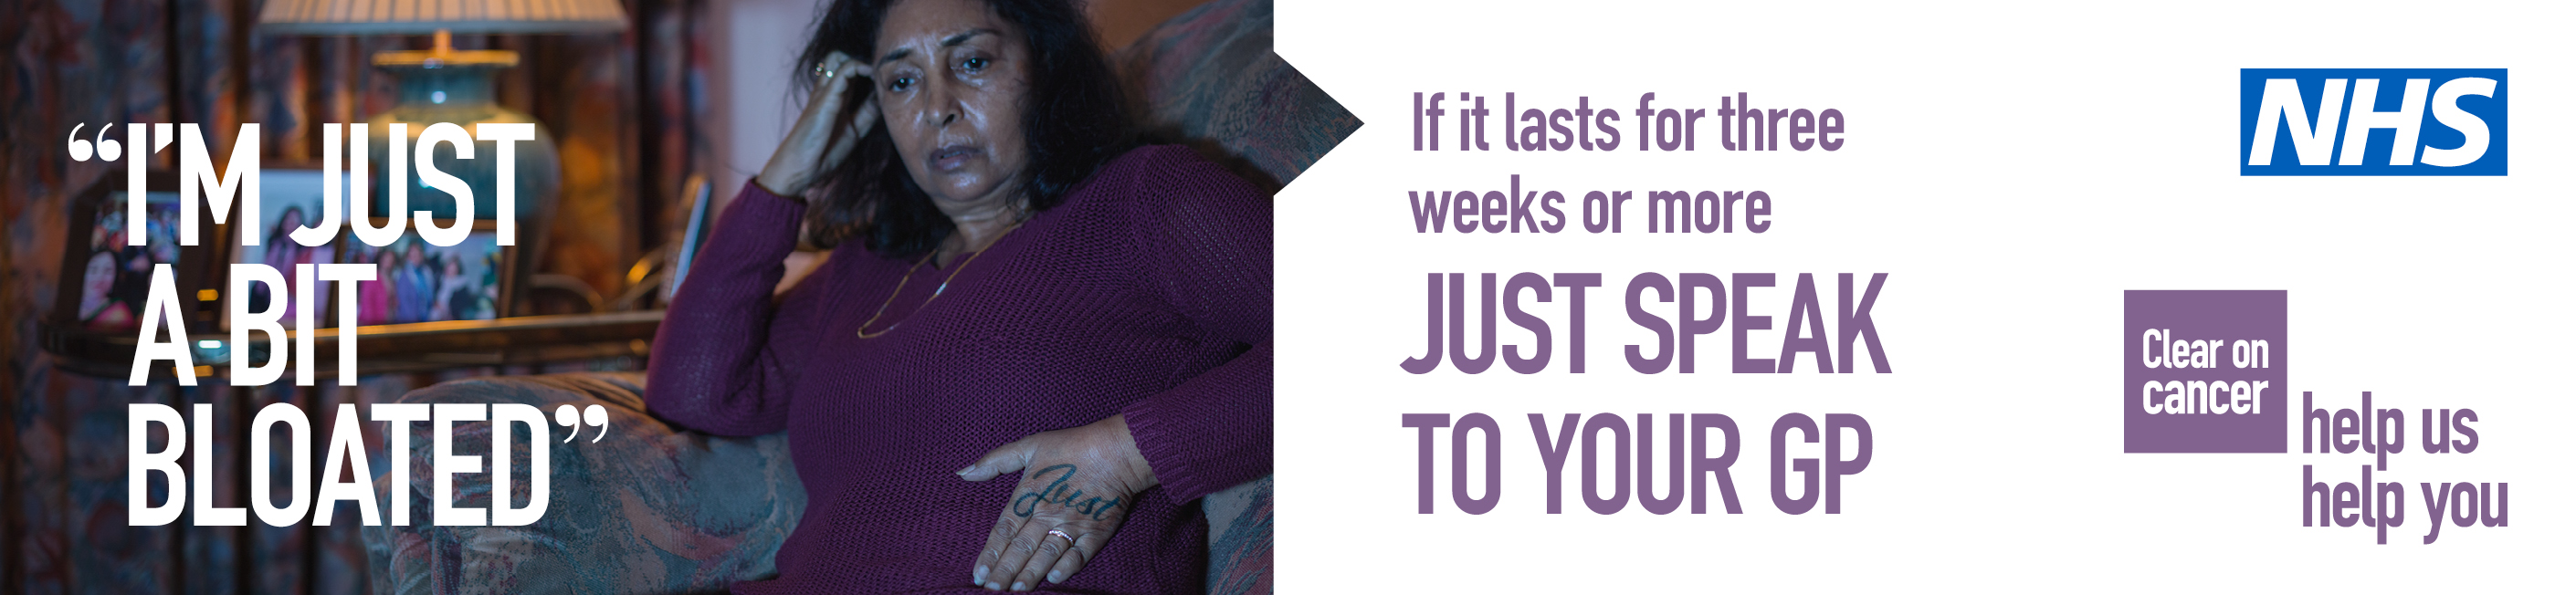 'Help Us, Help You' campaign urges Yorkshire and the Humber residents not to ignore warning signs of abdominal cancer